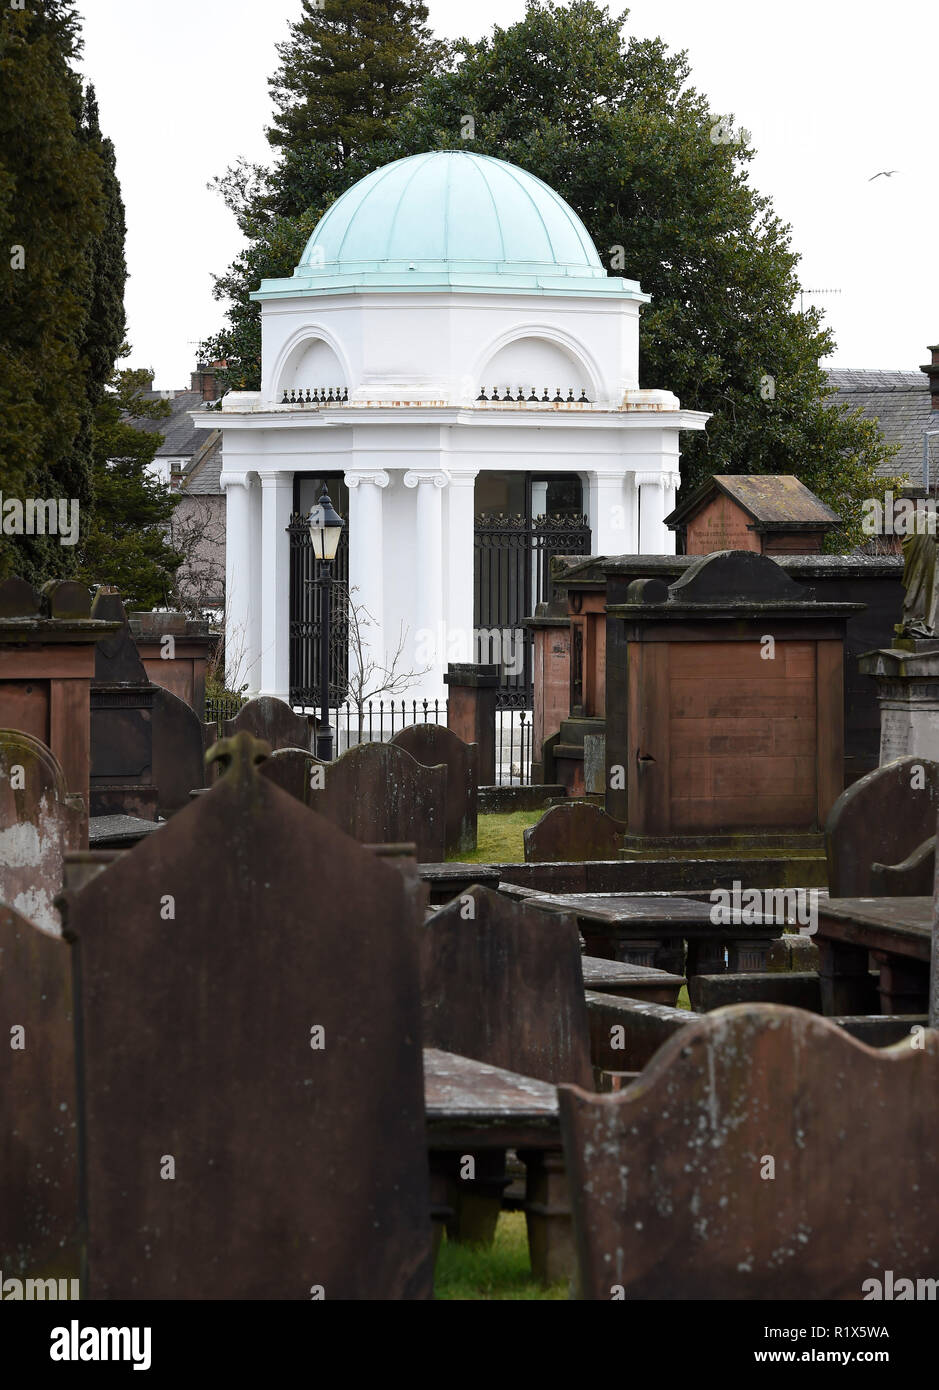 Dumfries, Dumfries & Galloway, Scotland. The Robert Burns mausoleum framed by the grave stones in St Michael's churchyard. - Stock Image